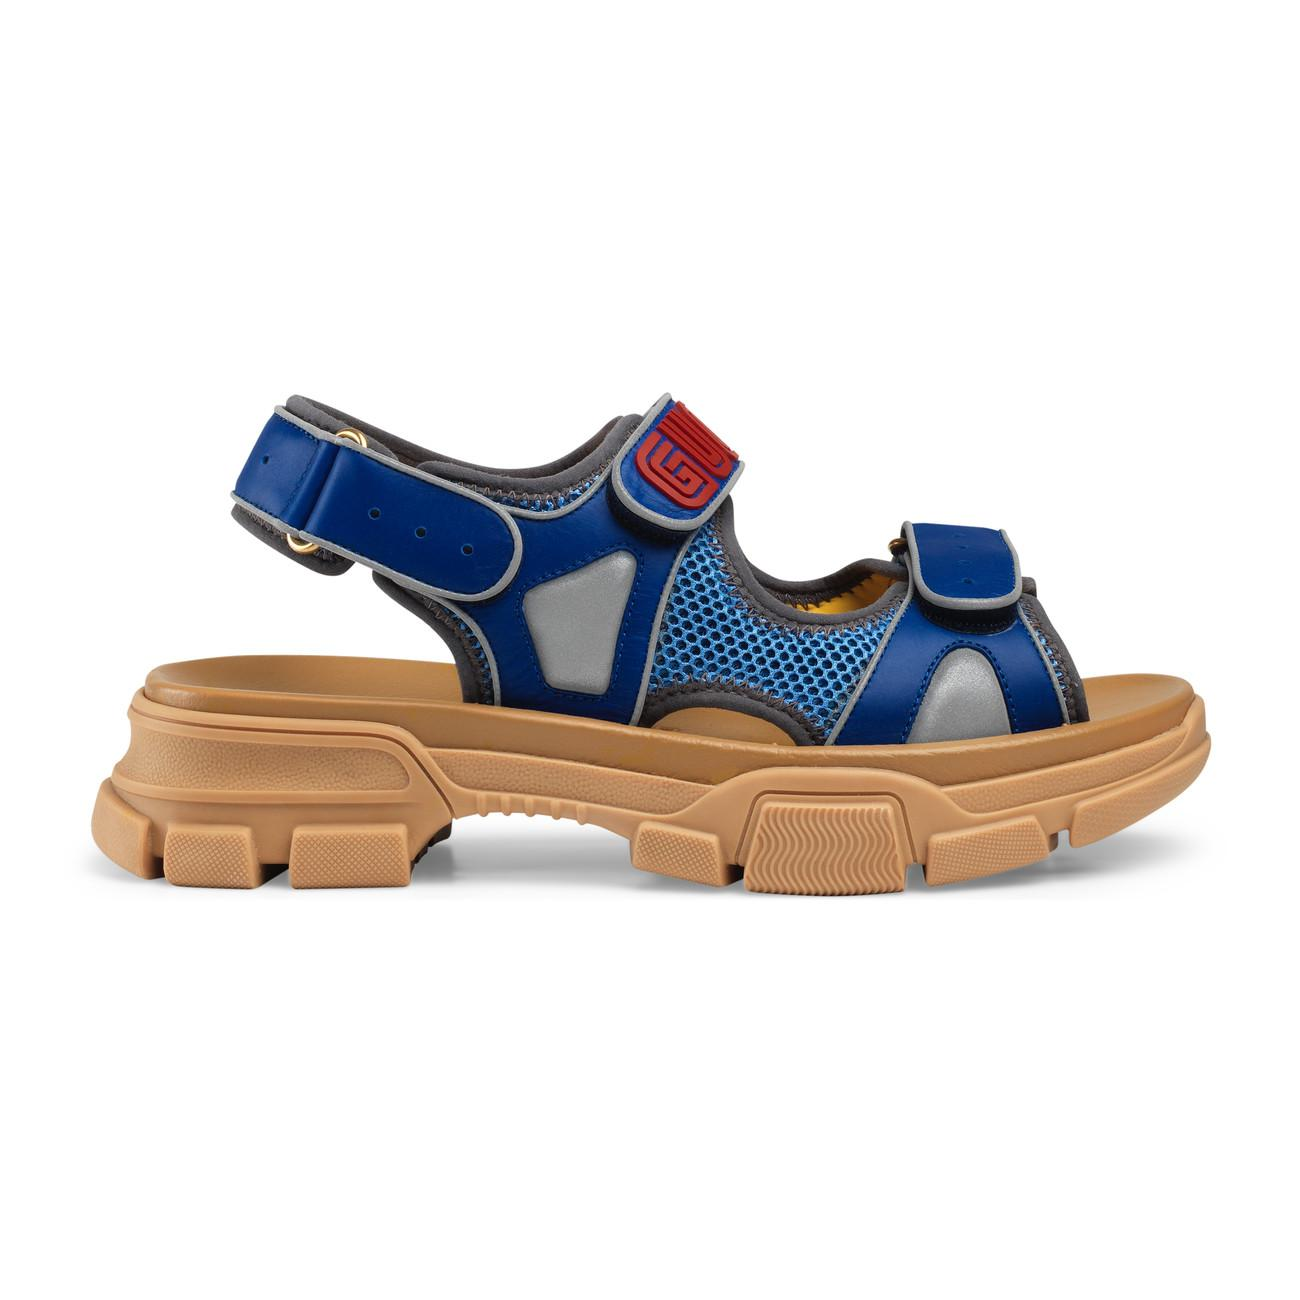 333c67e5edb0d3 Gucci - Blue Leather And Mesh Sandal for Men - Lyst. View fullscreen